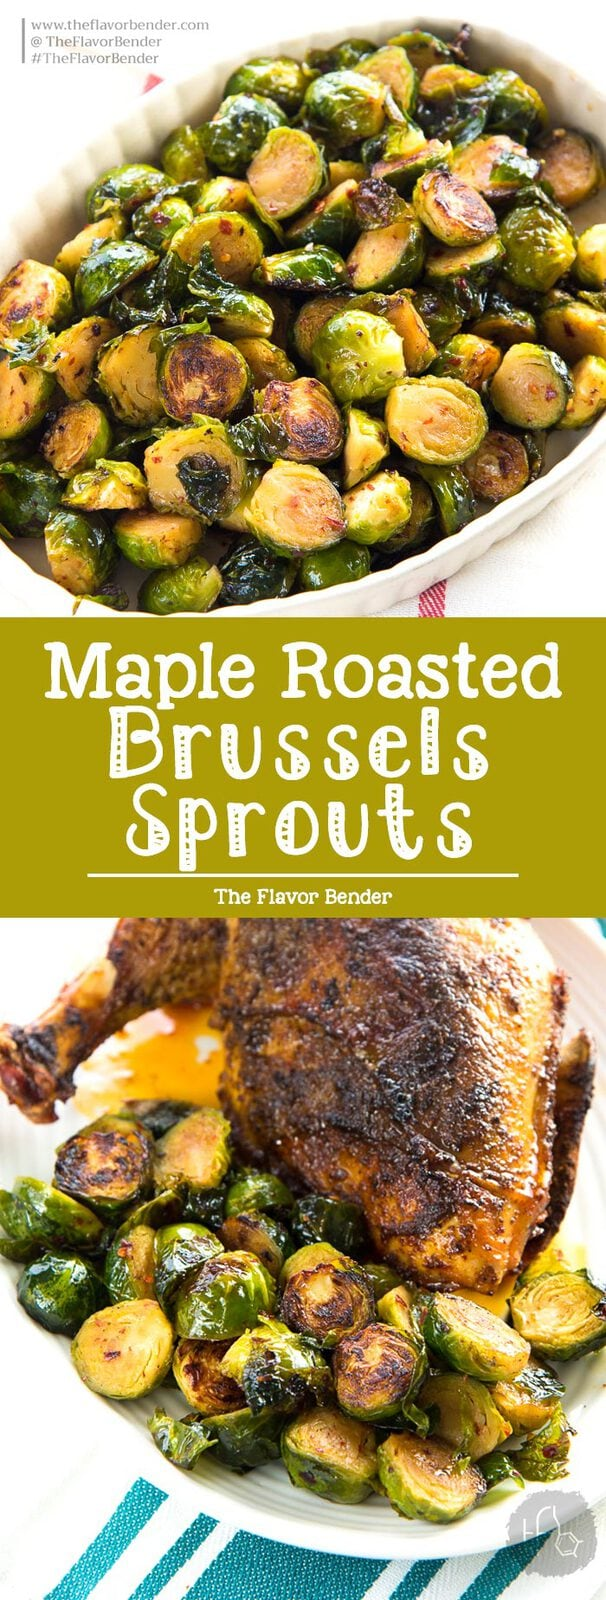 Maple Roasted Brussels Sprouts - A healthy, simple side dish for Thanksgiving, Christmas or any roast dinners. Deliciously crispy and caramelized with sweet and spicy flavors. Vegan and Paleo. #BrusselsSprouts #ThanksgivingSideDishes #HealthyRecipes #ChristmasSideDishes